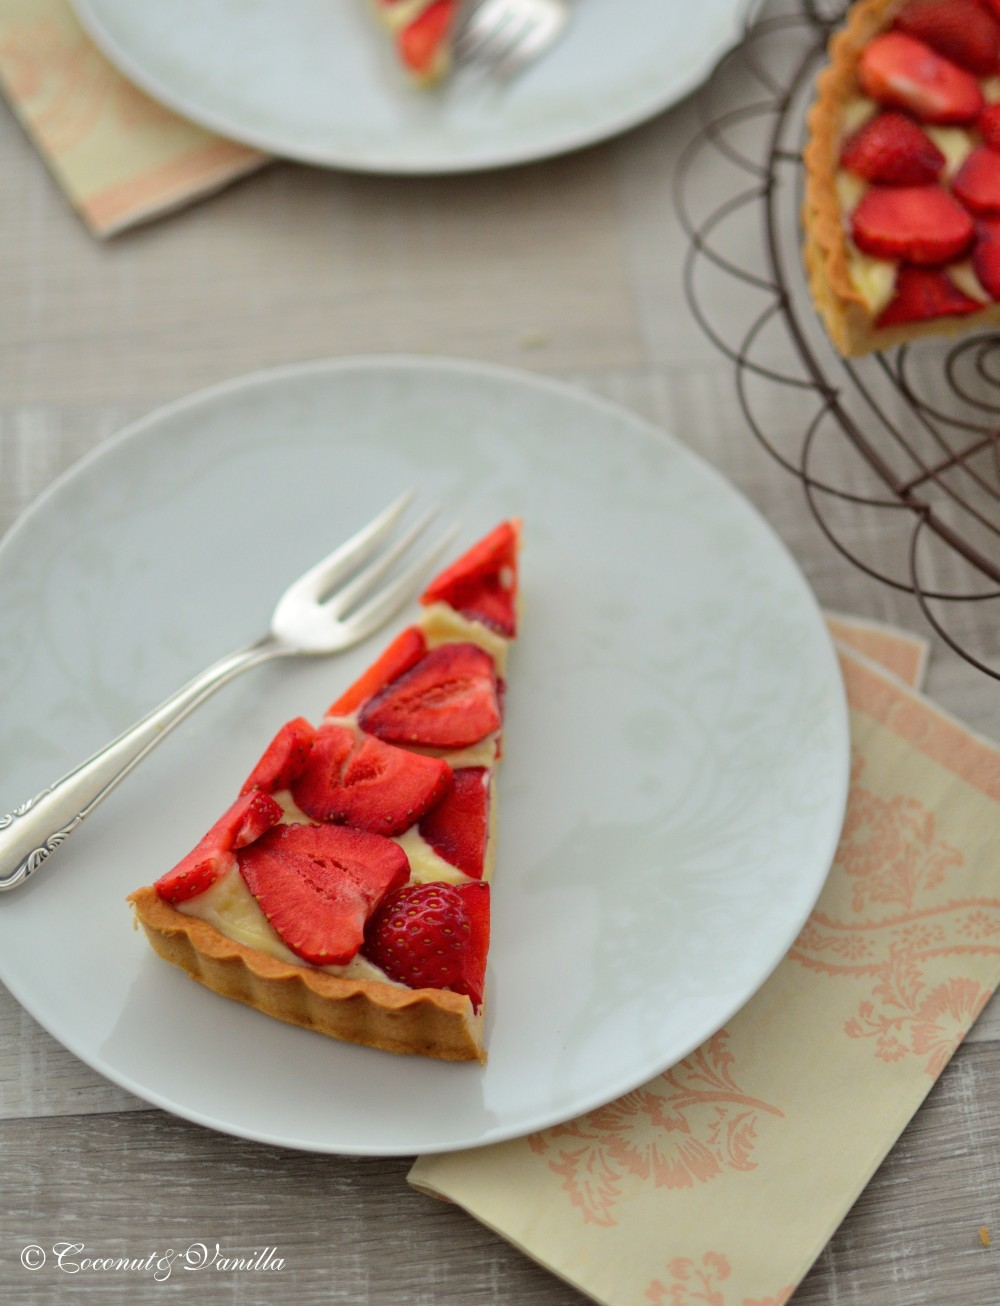 Strawberry-Vanilla-Tart